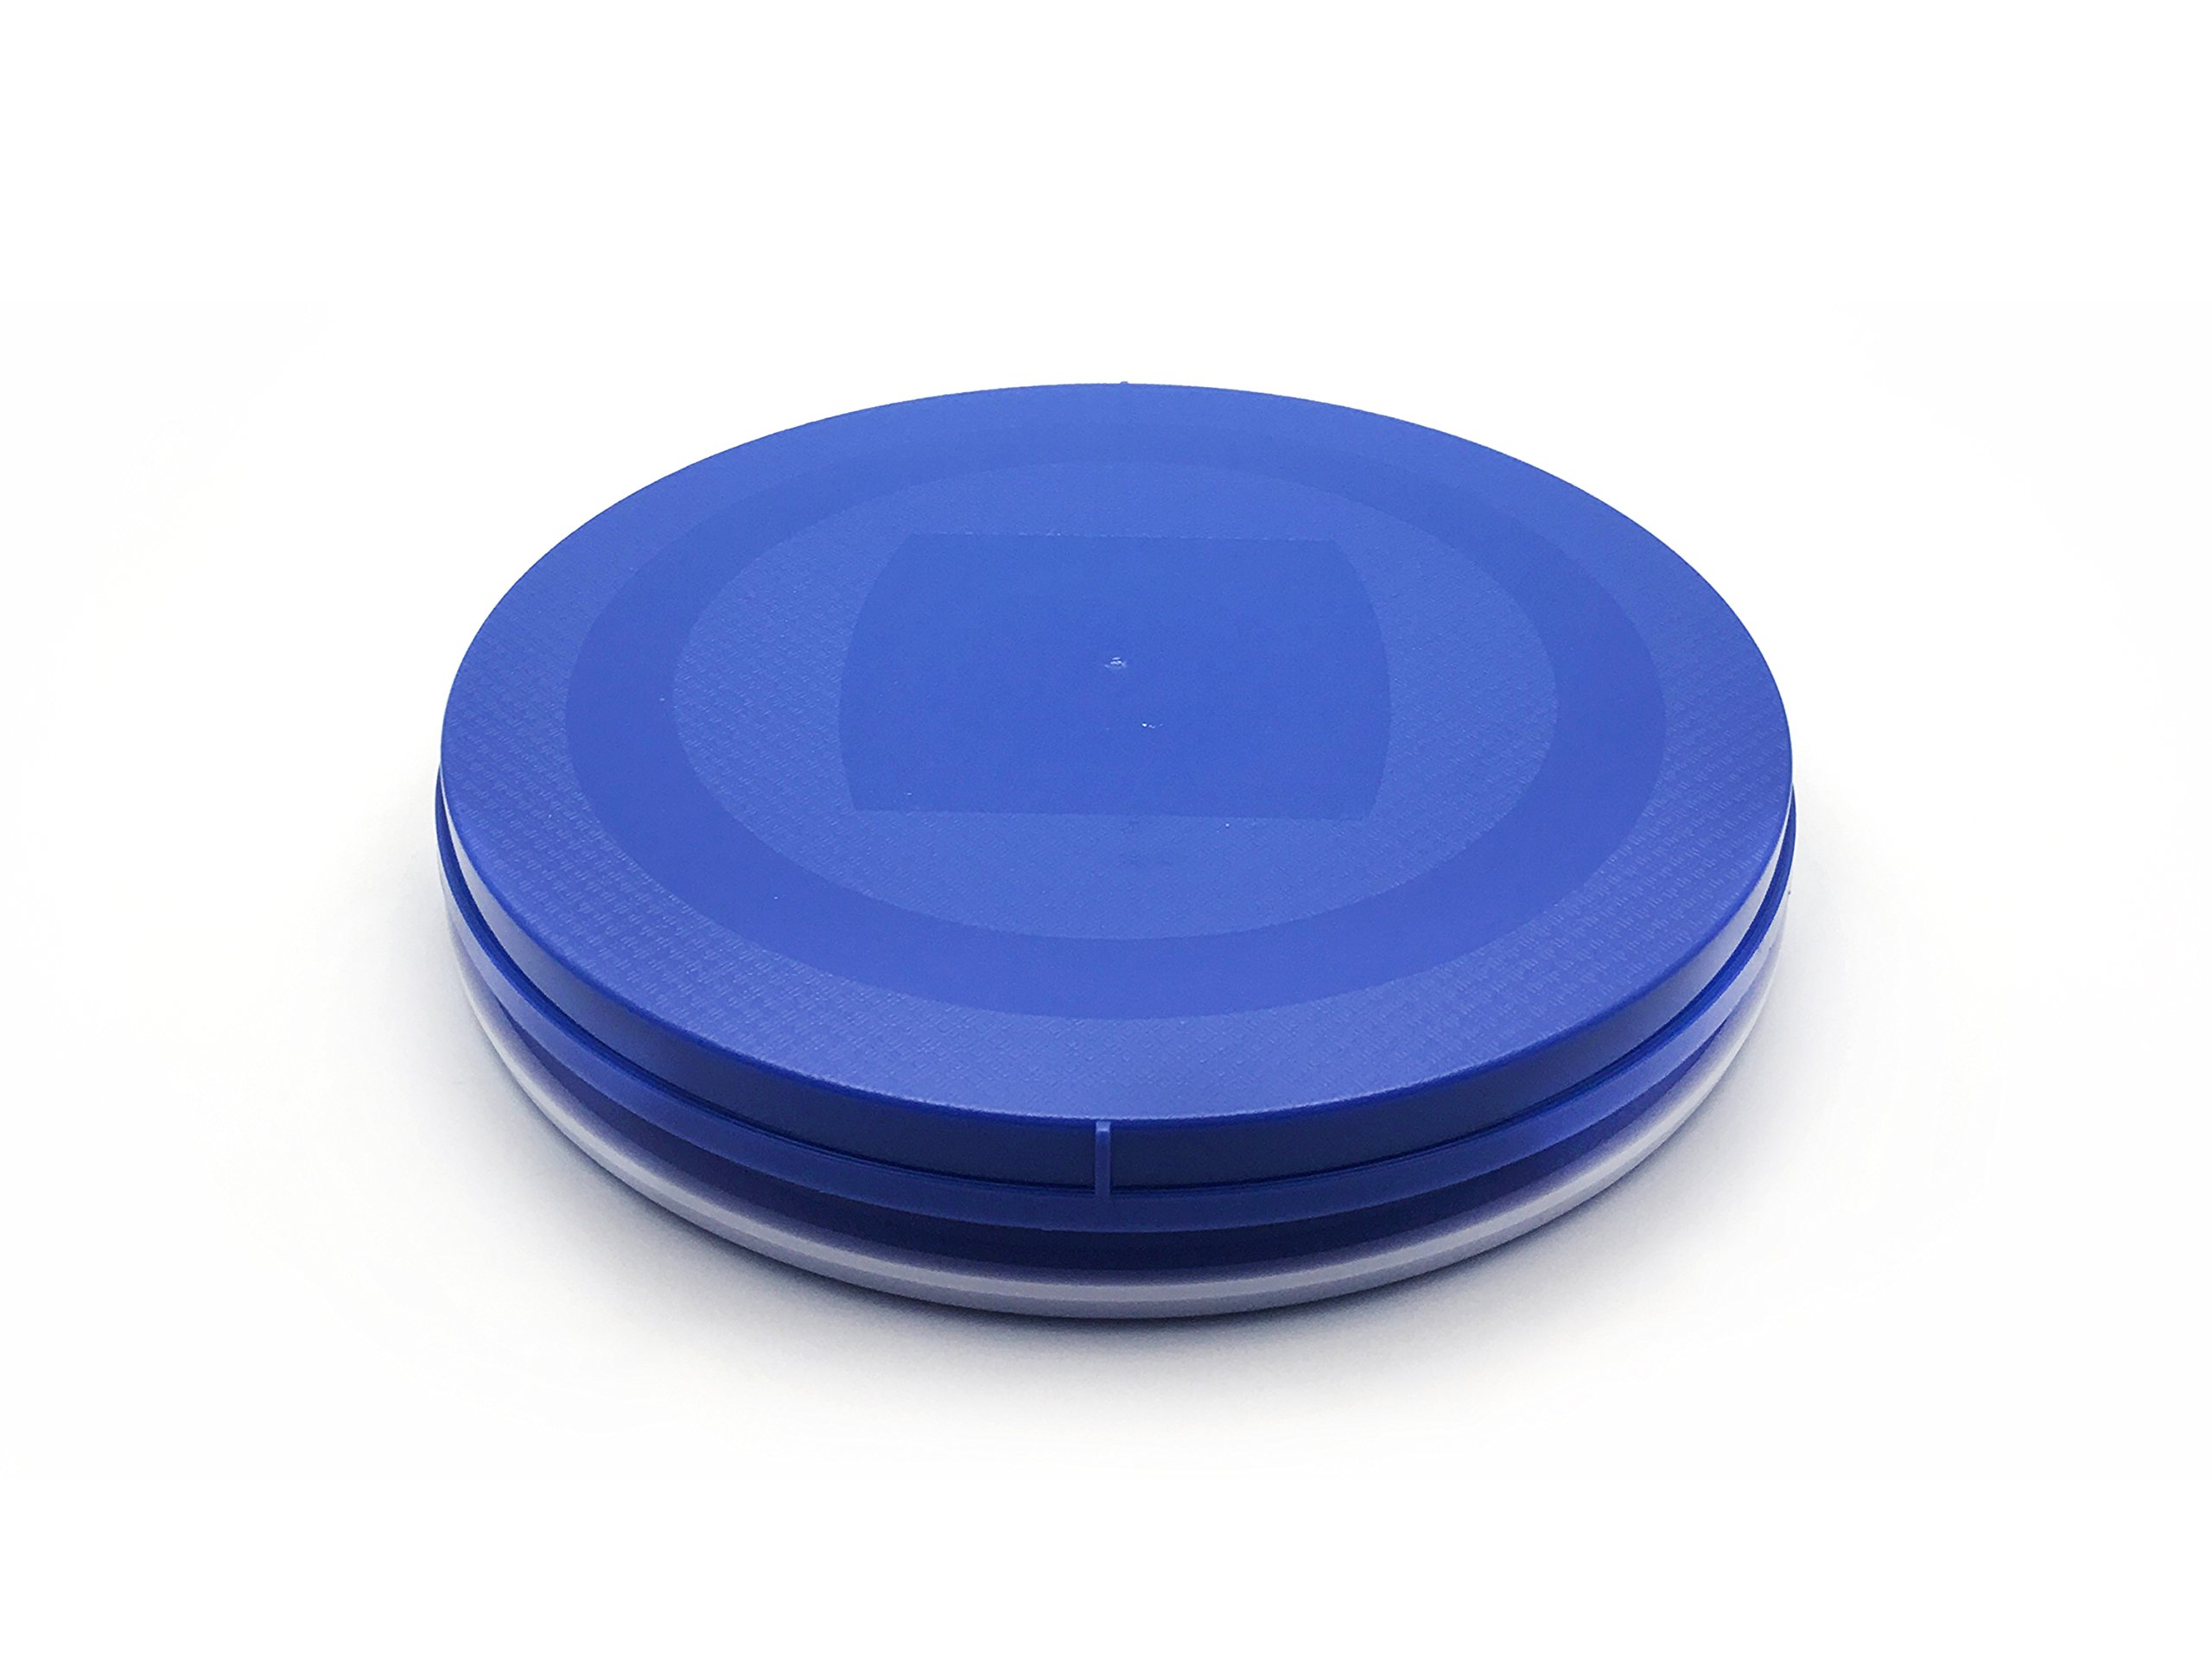 Anti-Ant Magic Tray, Shield, Pet Tray, No Ants Eat Foods (1) by MeowPlanet